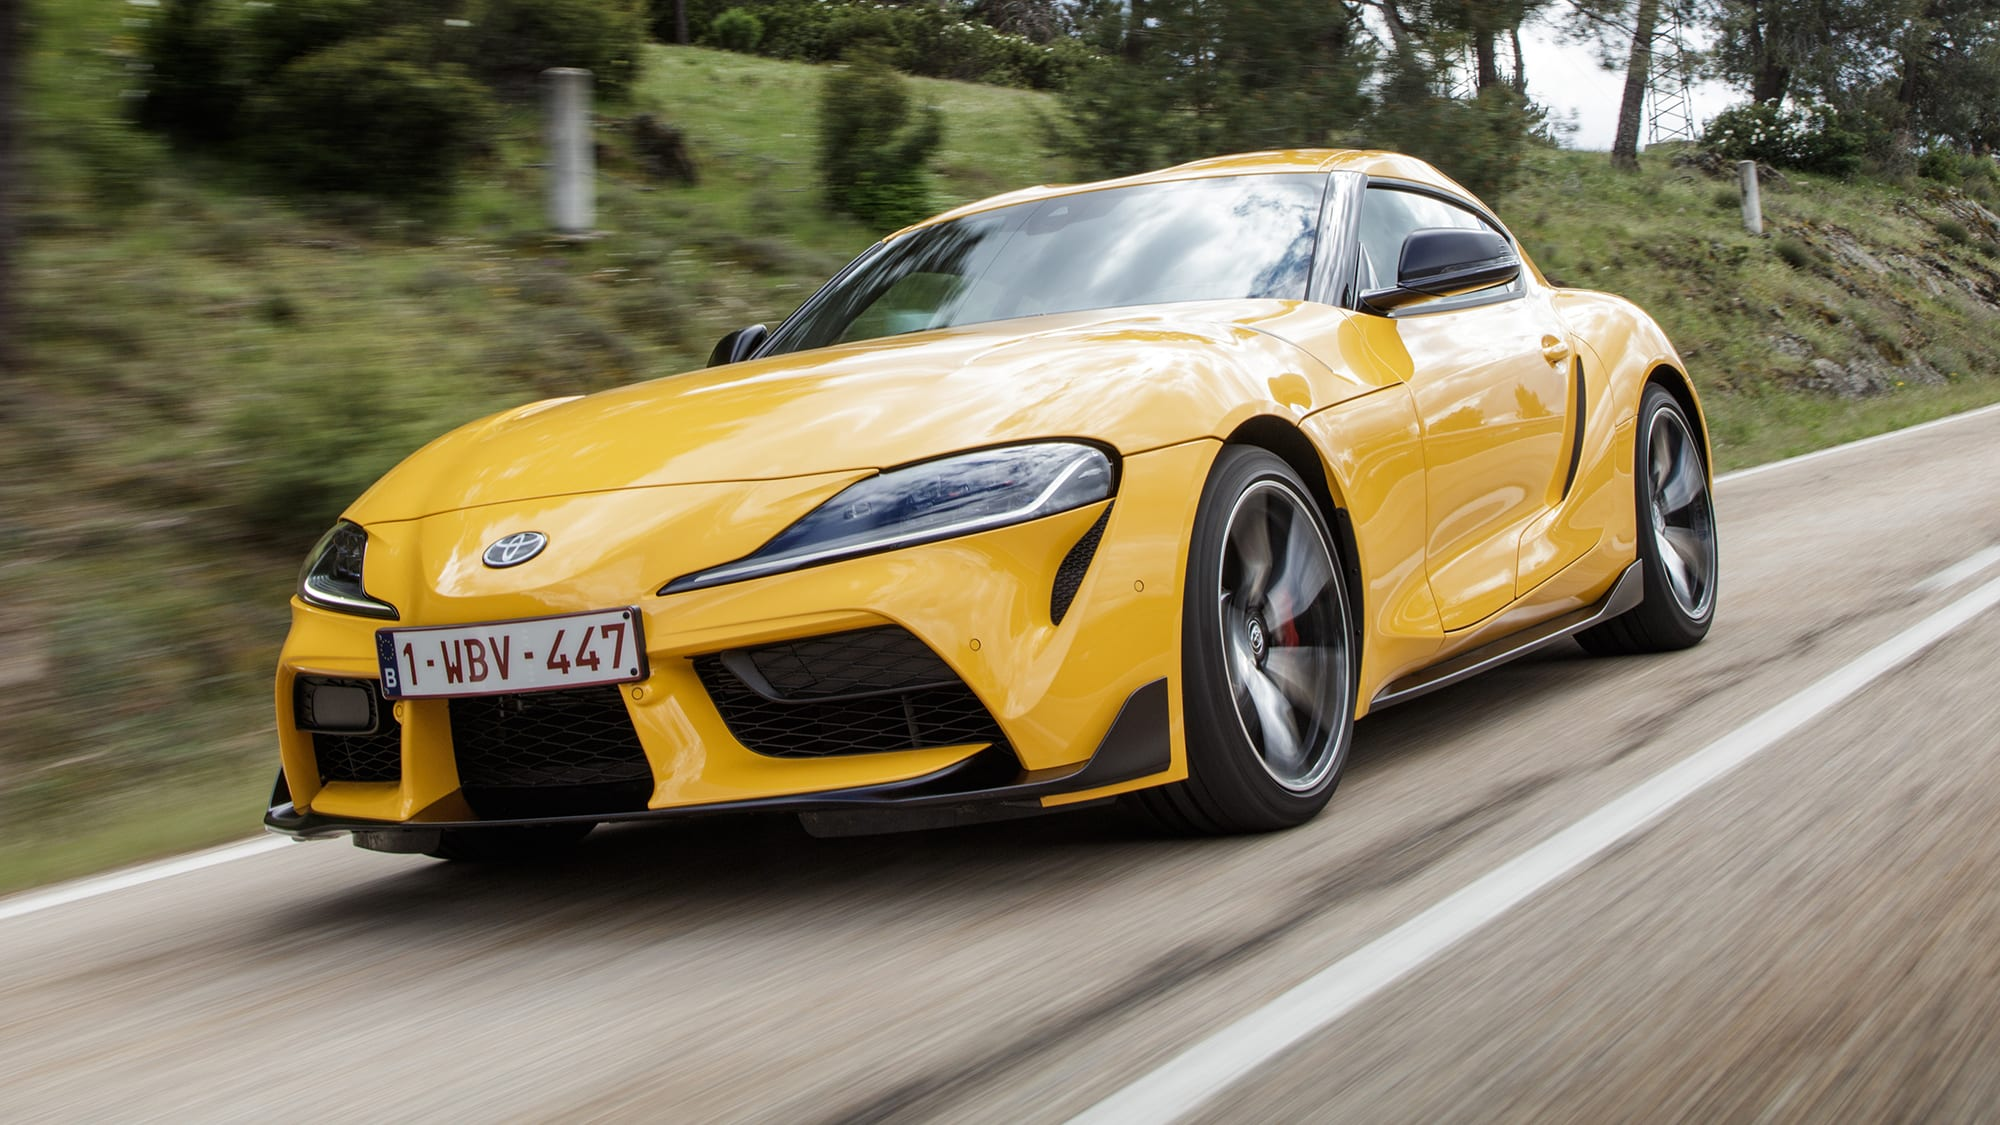 fce60ecdd11 Toyota Supra pricing leaked: $100,000 drive-away for top model   CarAdvice